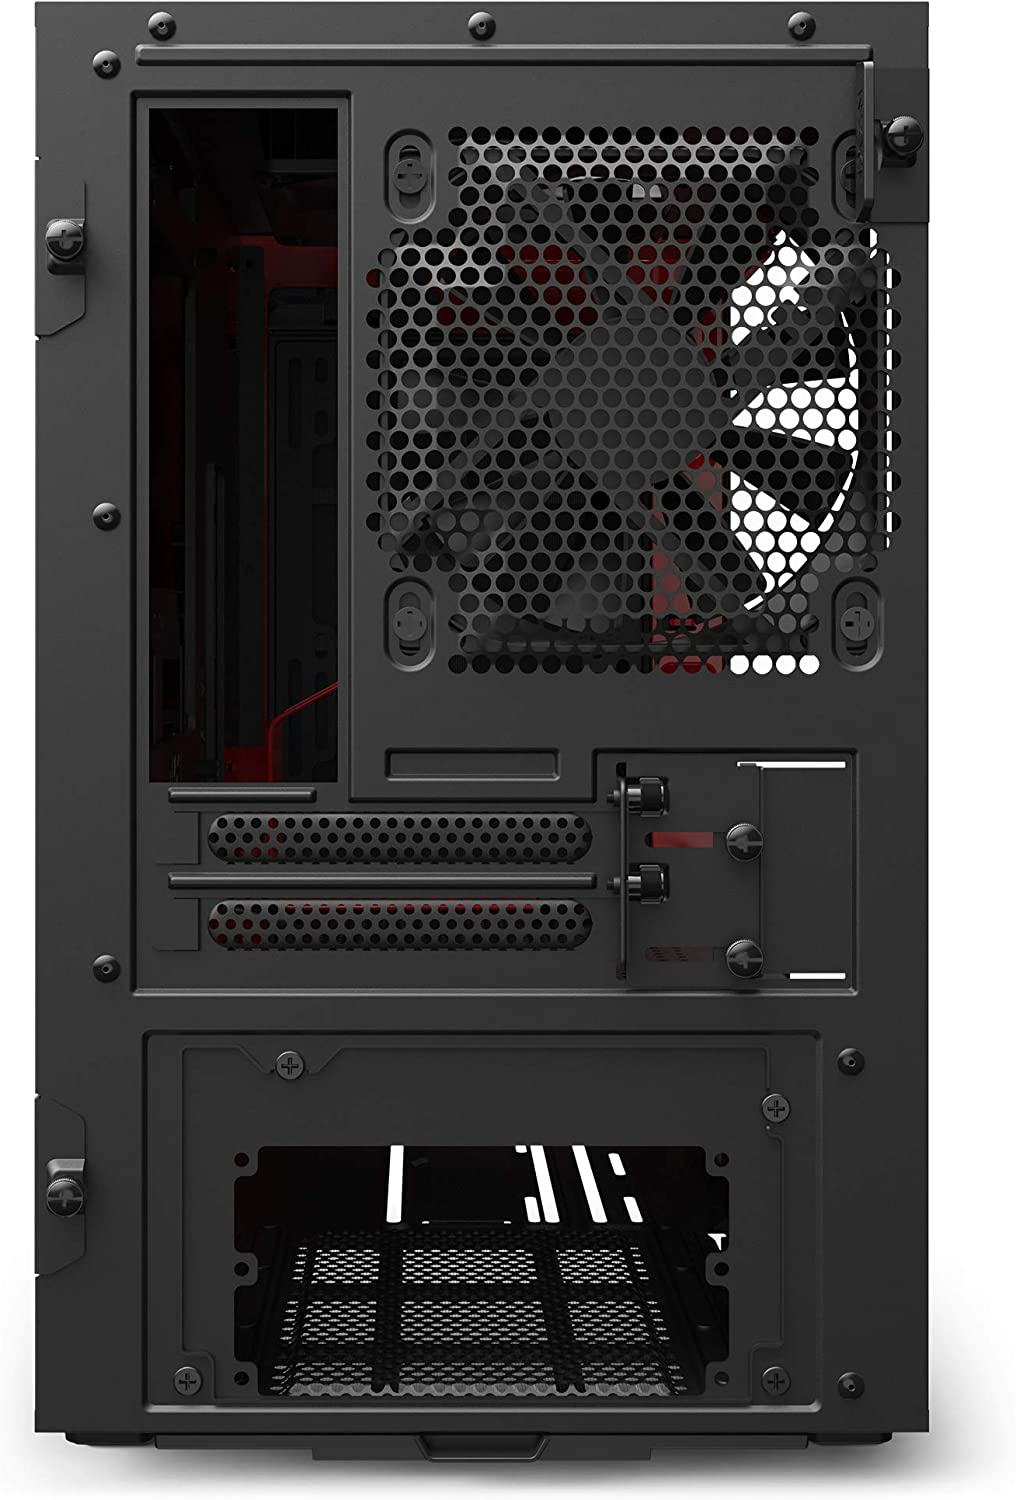 Water-Cooling Ready Front I//O USB Type-C Port Compact ATX Mid-Tower PC Gaming Case Tempered Glass Side Panel White//Black Steel Construction Cable Management System NZXT H510